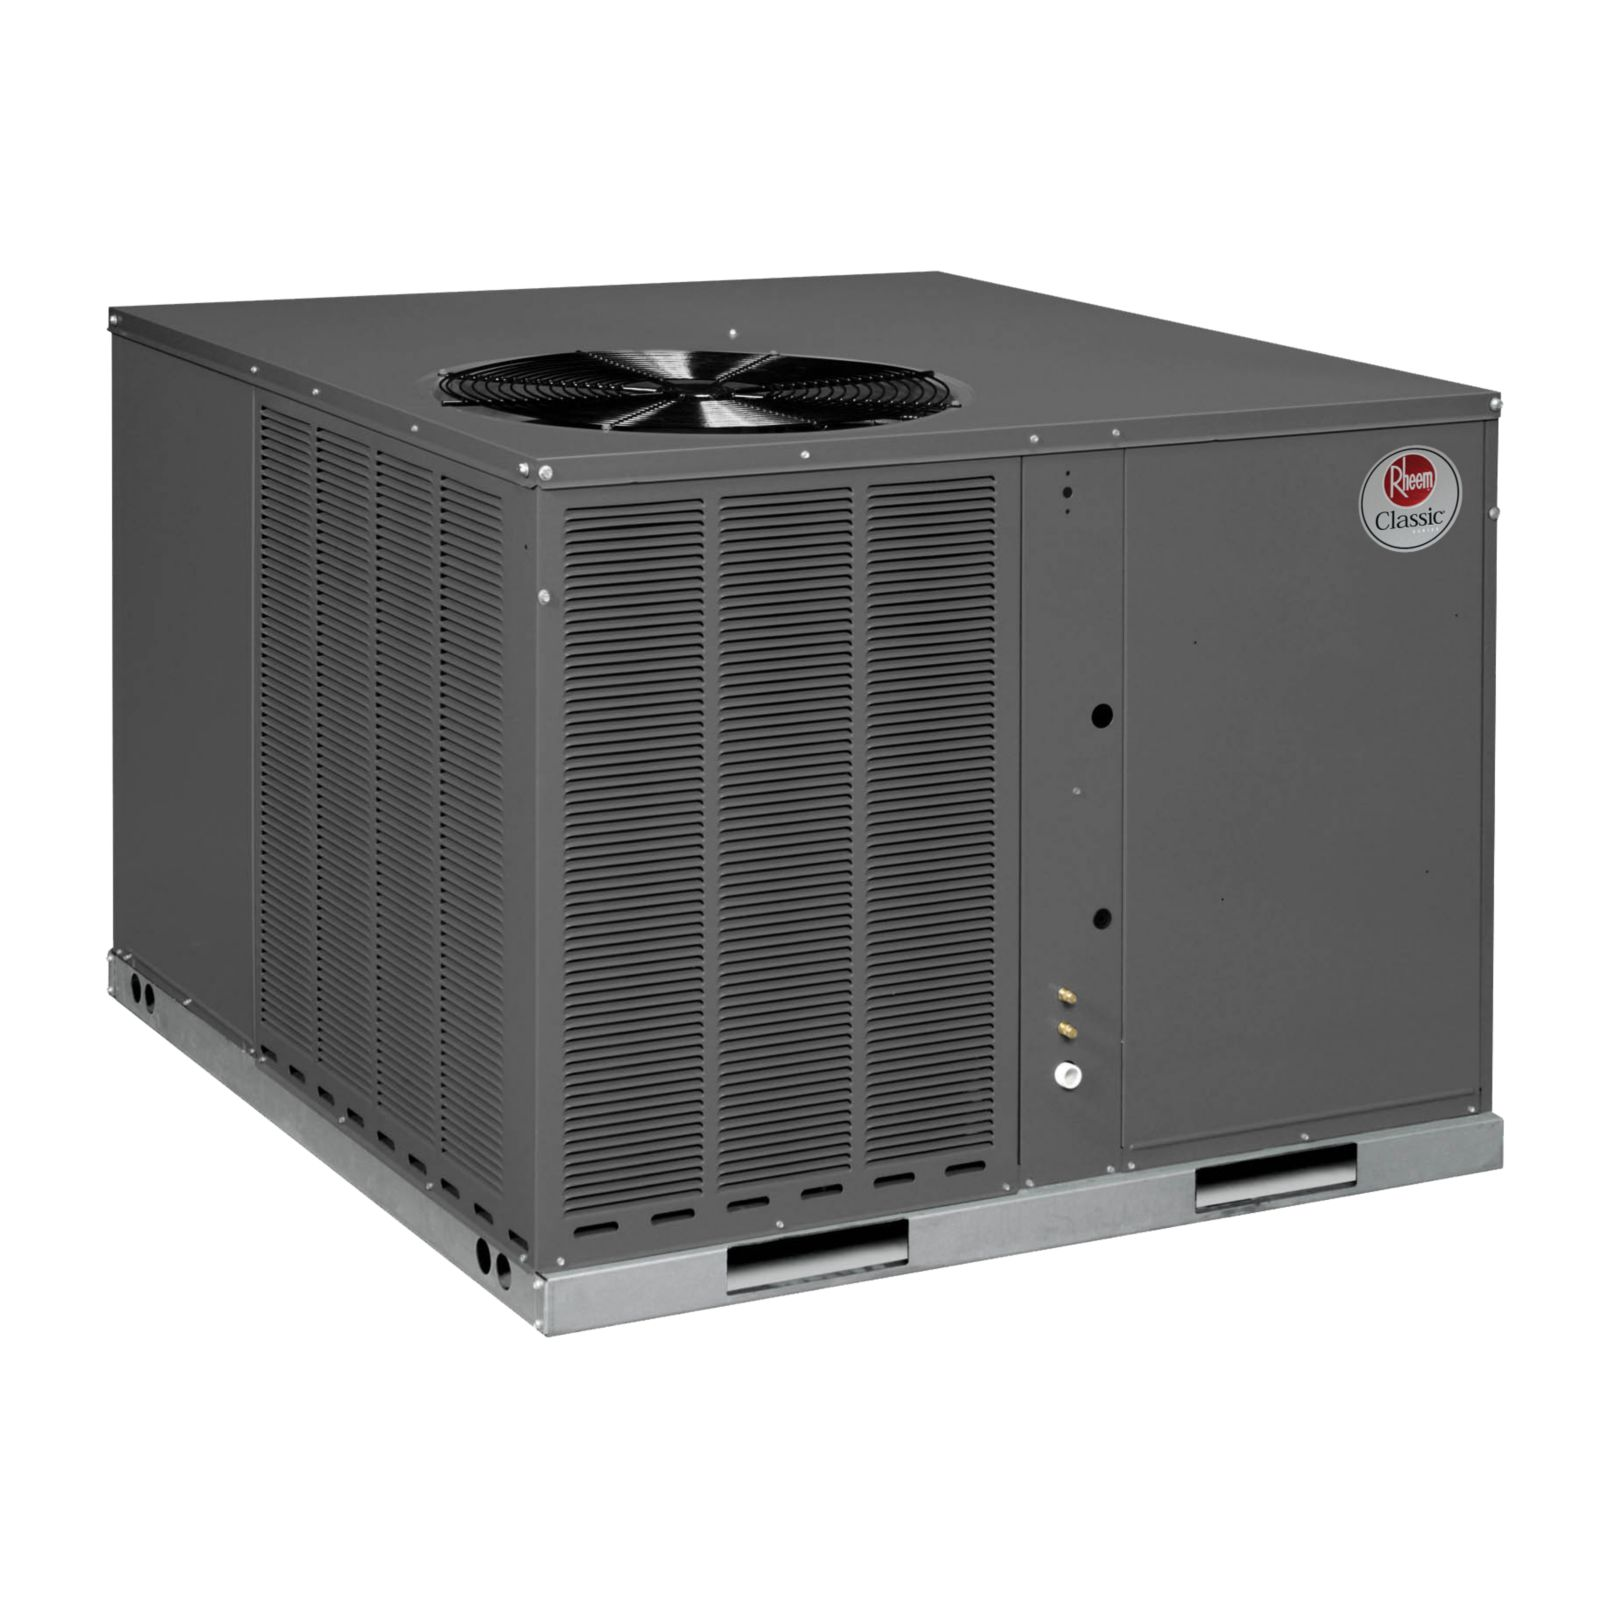 Rheem RQPL-B042JK000 - 3 1/2 Ton, 14 SEER, R410A, Packaged Heat Pump, 208-230 V, 1 Ph, 60 Hz